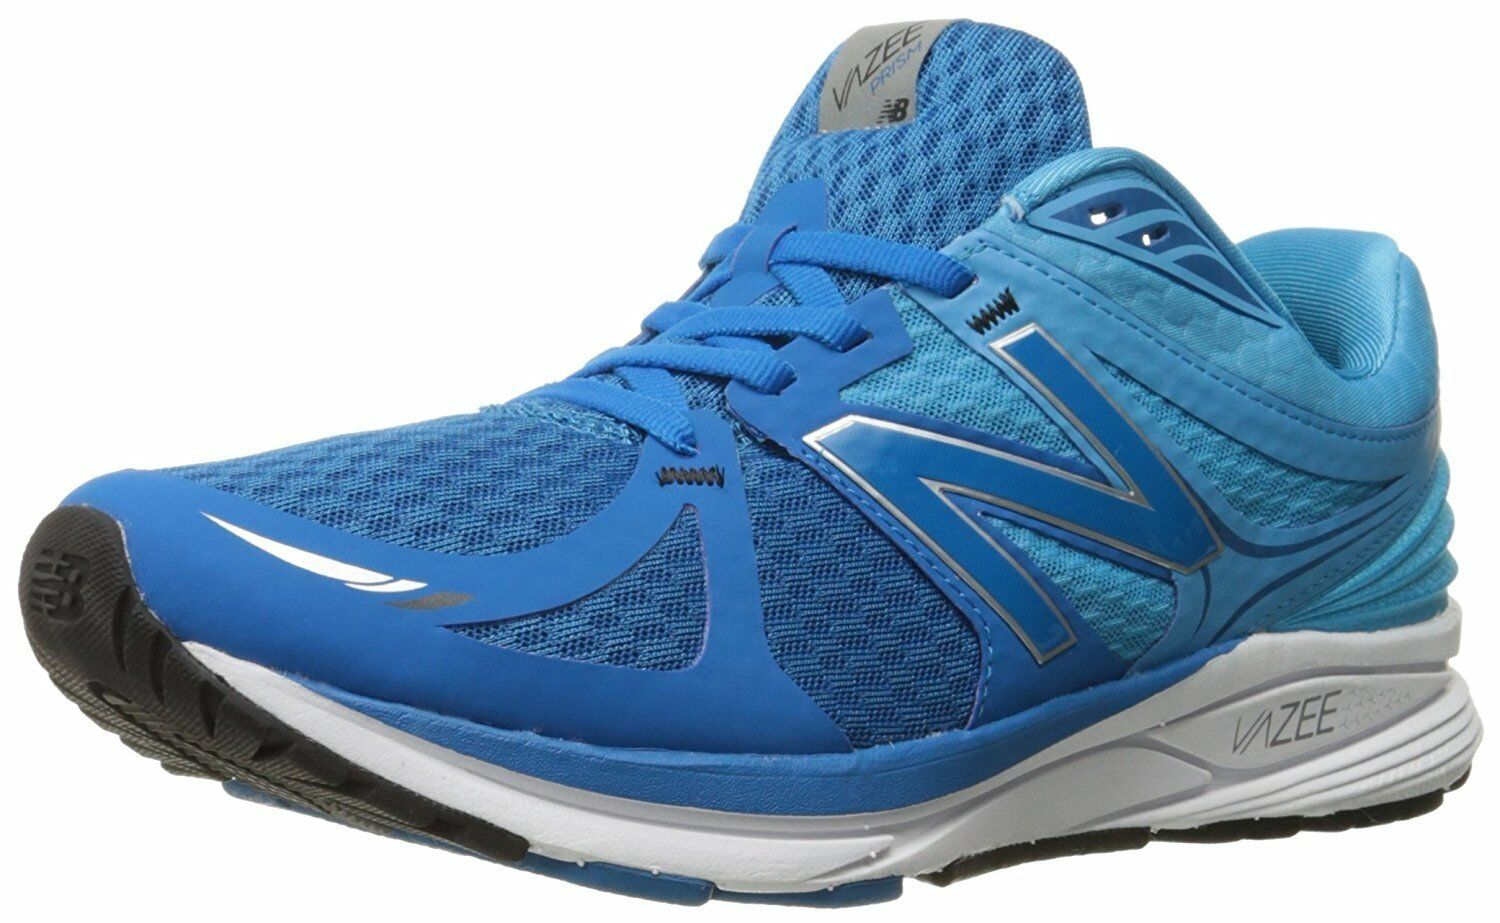 New Balance Men's Vazee Prism Mild Stability Running shoes